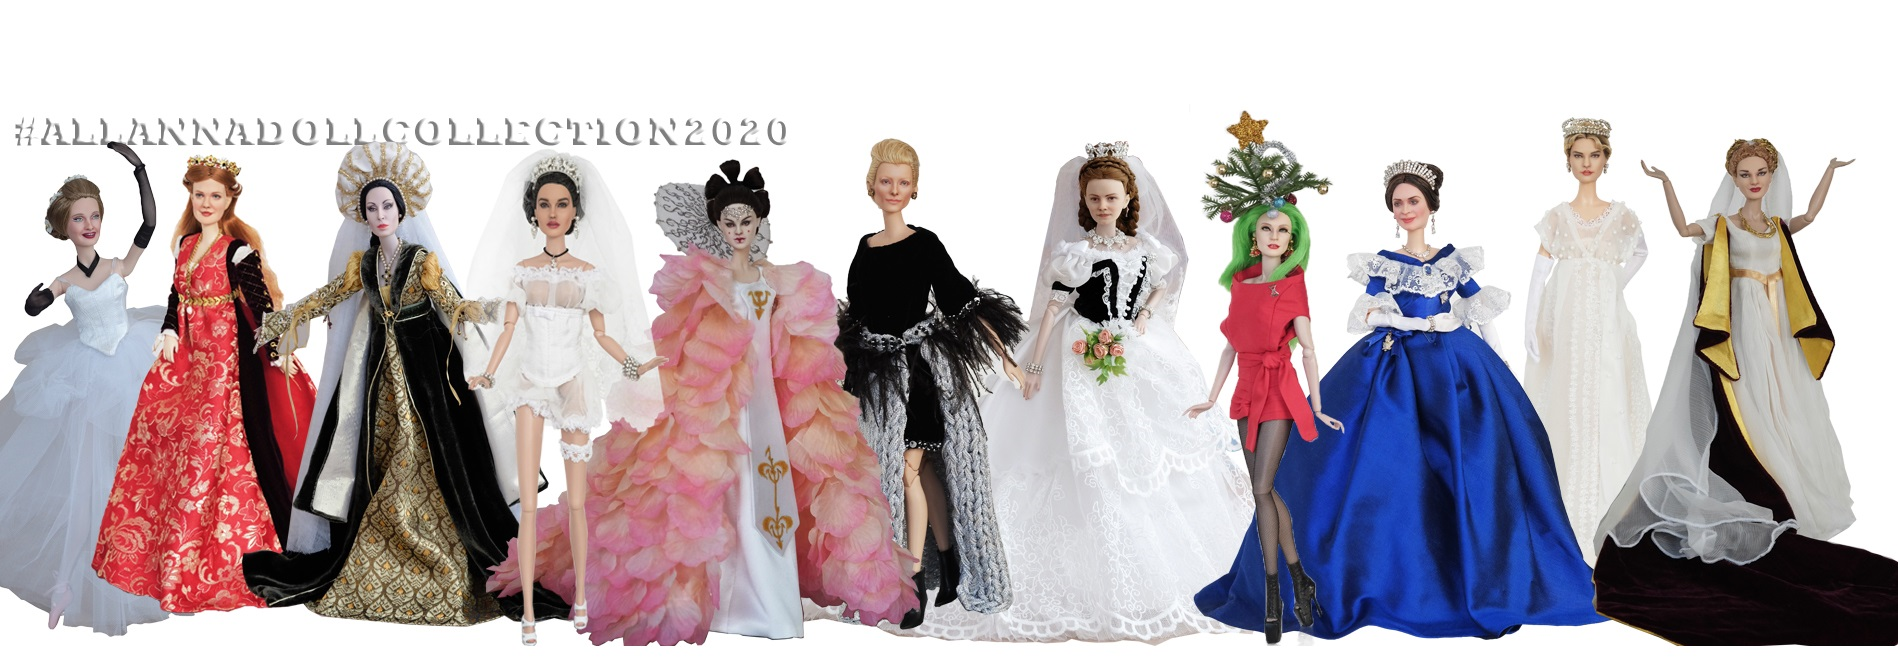 allannadoll collection 2020